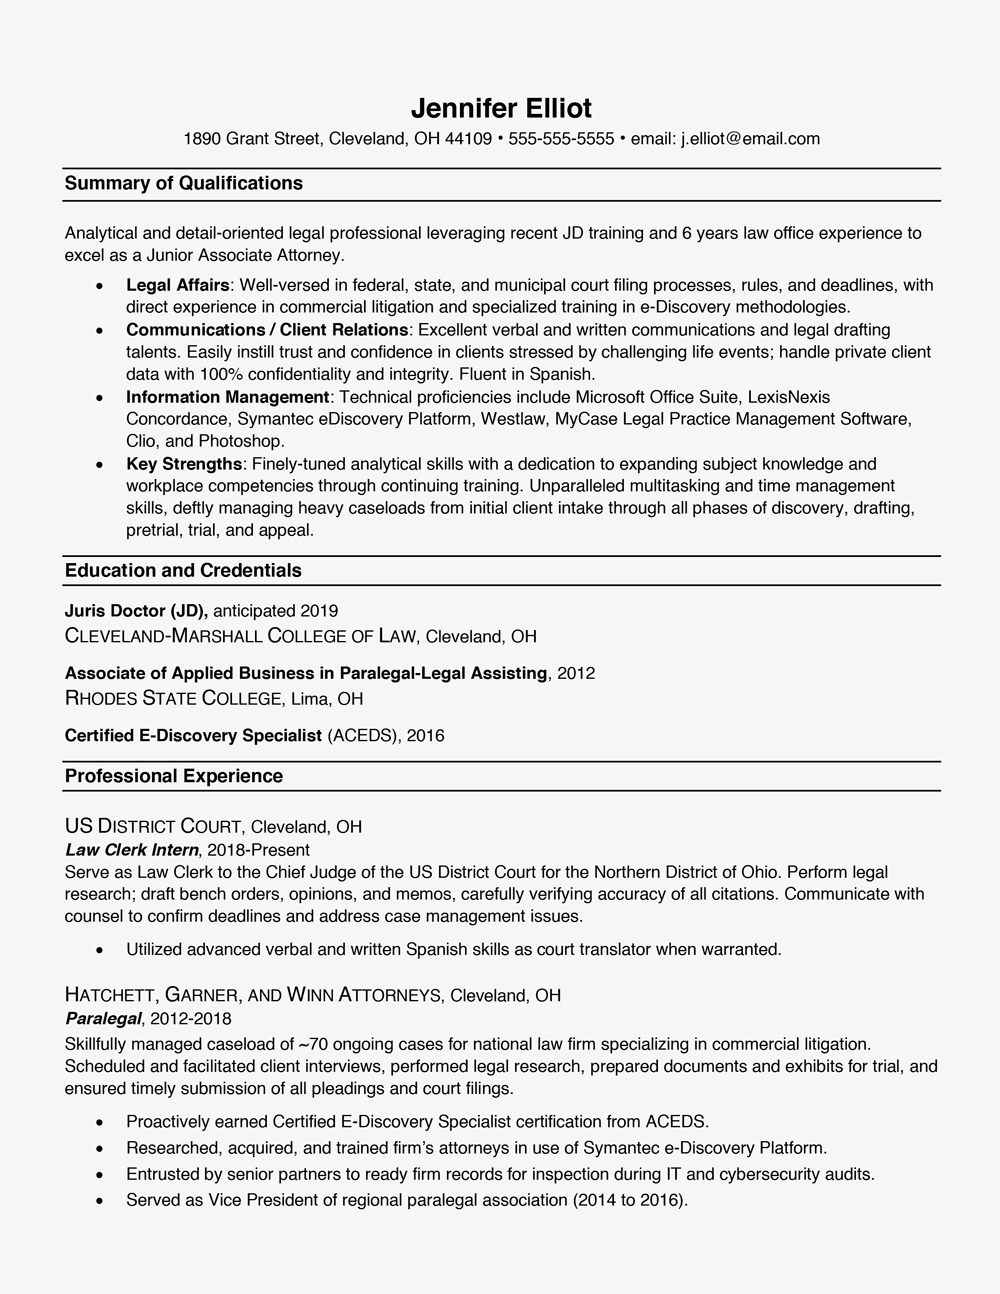 Resume Formats—With Examples and Formatting Tips